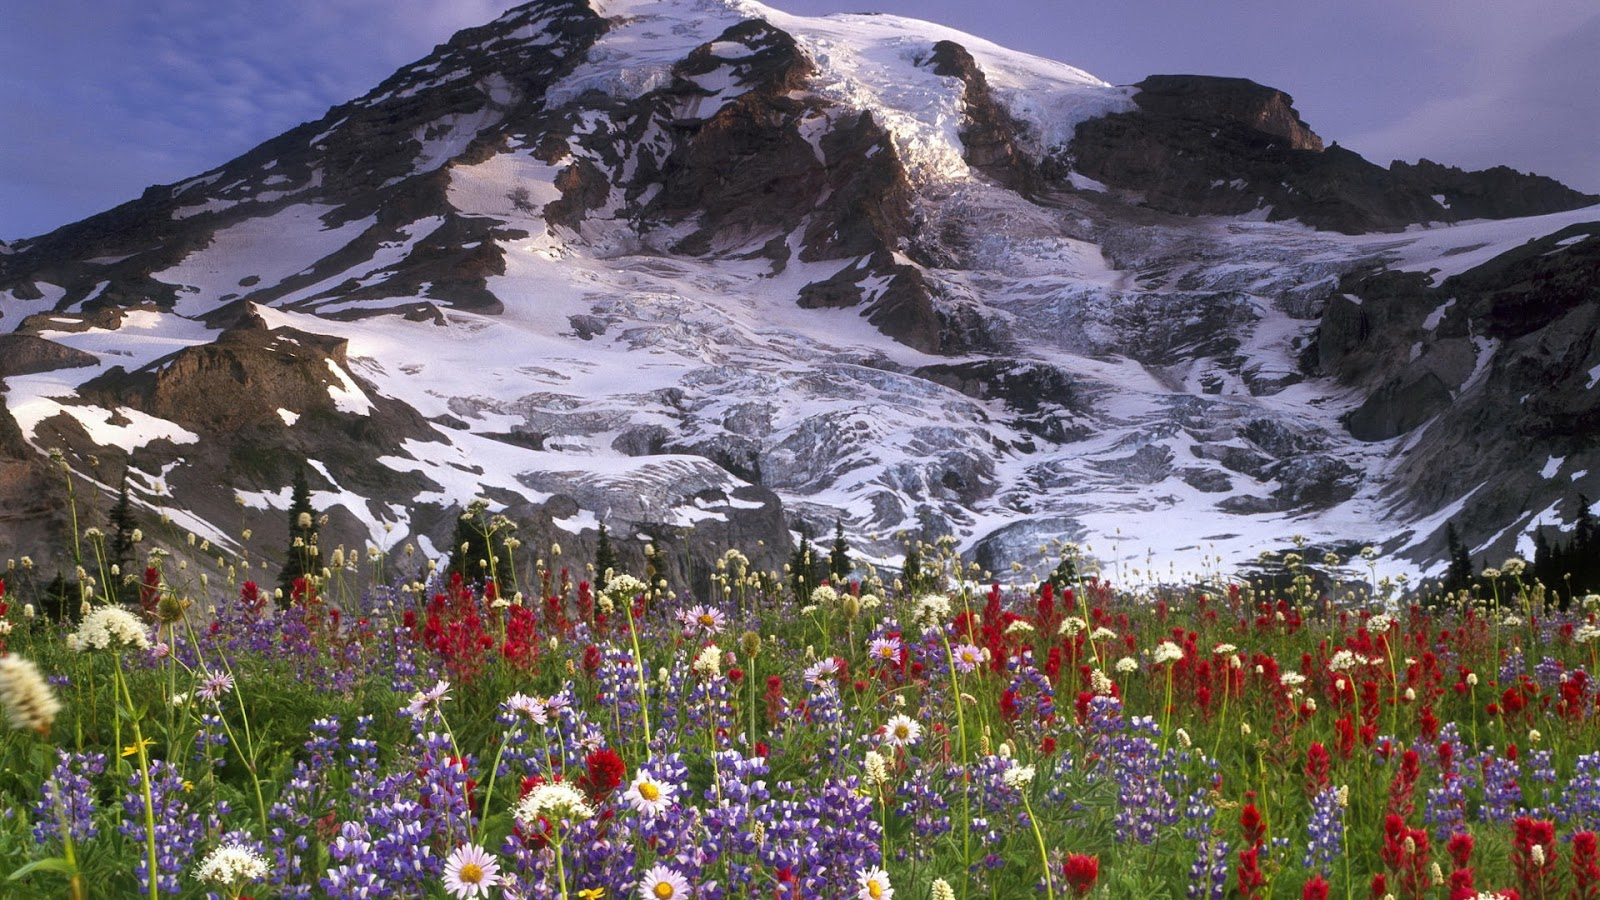 http://2.bp.blogspot.com/-kYuNBT7YFJY/UEhfmH_KEKI/AAAAAAAAA-g/NTP2eaOeo9g/s1600/flowers-at-ice-mountains-full-HD-nature-background-wallpaper-for-laptop-widescreen.jpg